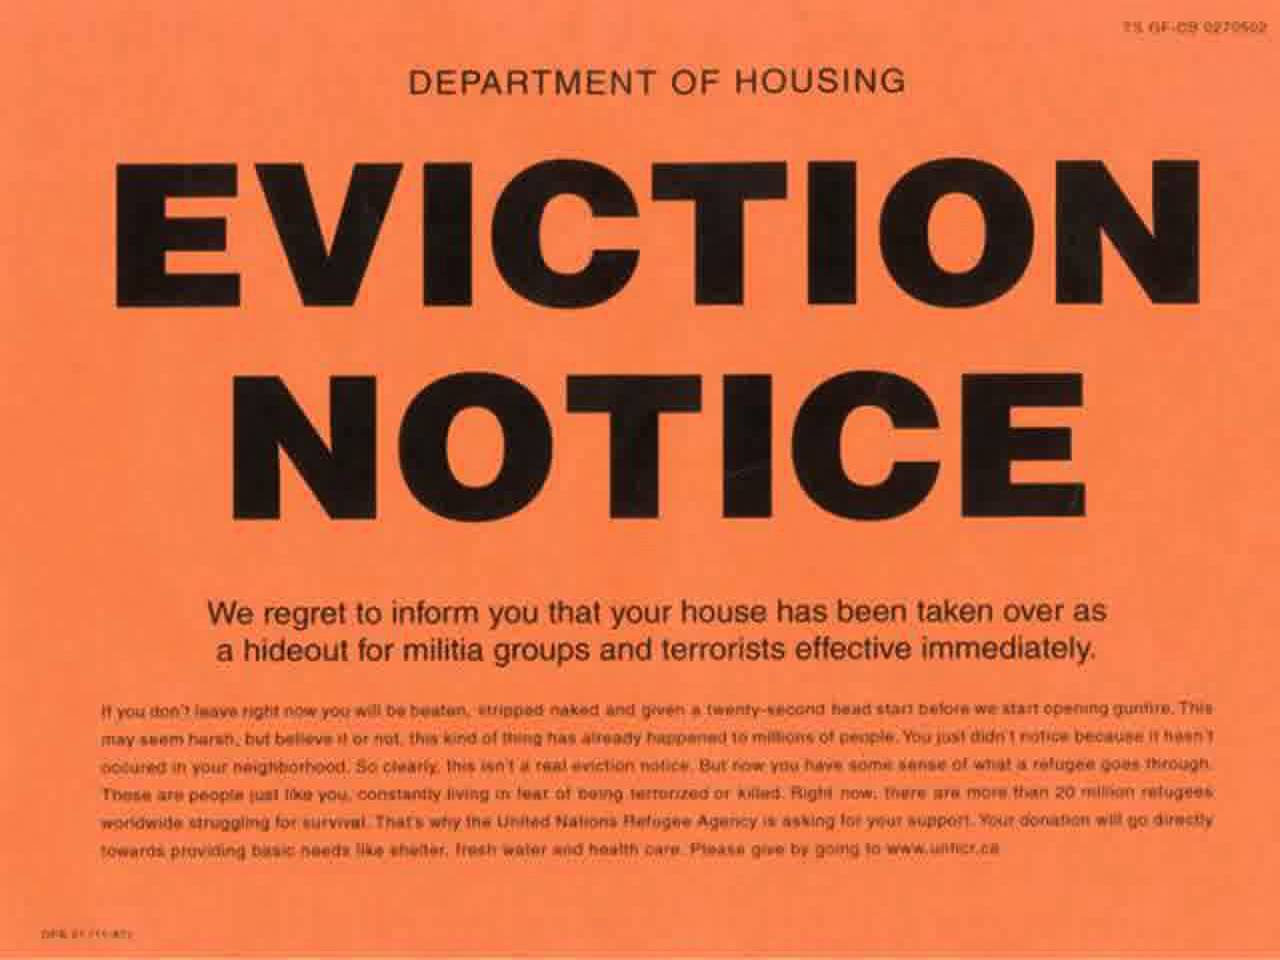 Free Eviction Notice Template 8 – lafayette dog days